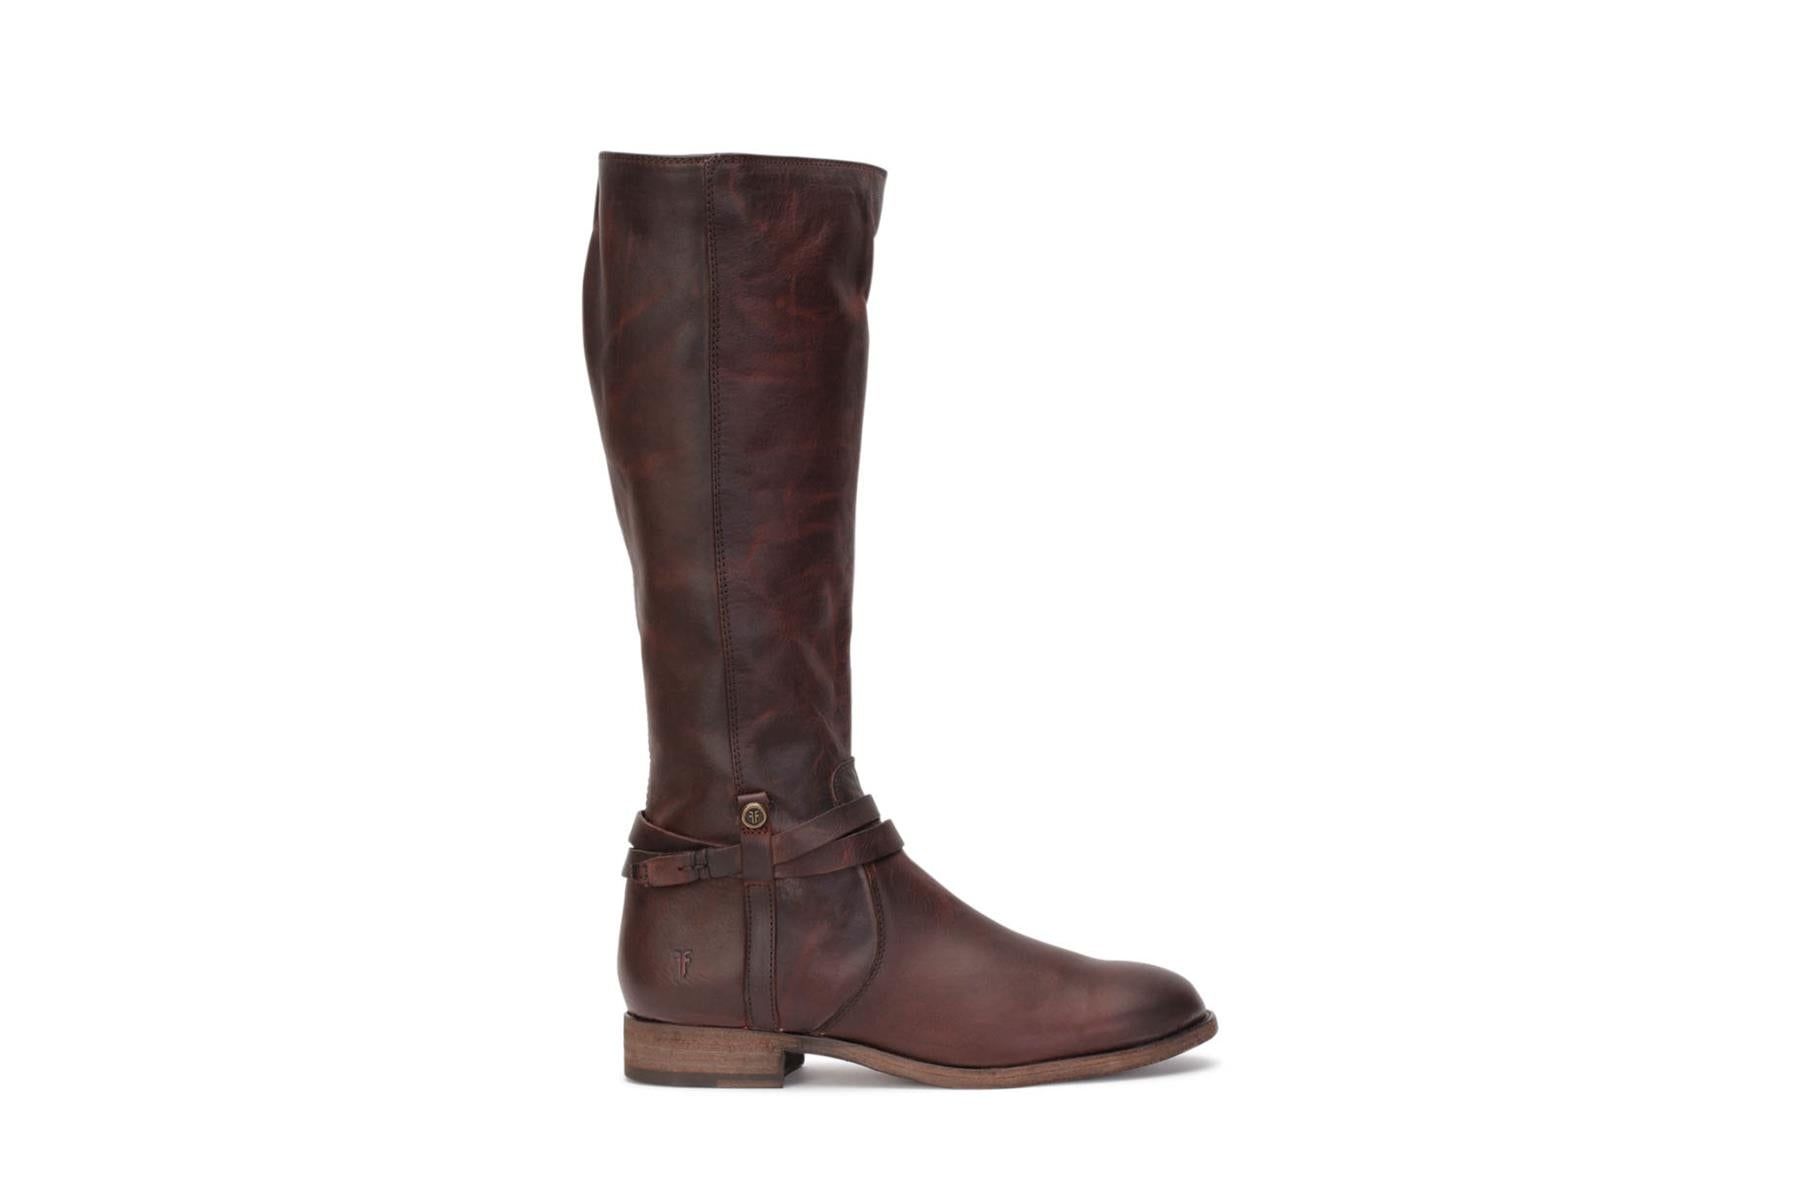 frye-womens-melissa-belted-tall-knee-high-boots-redwood-leather-main